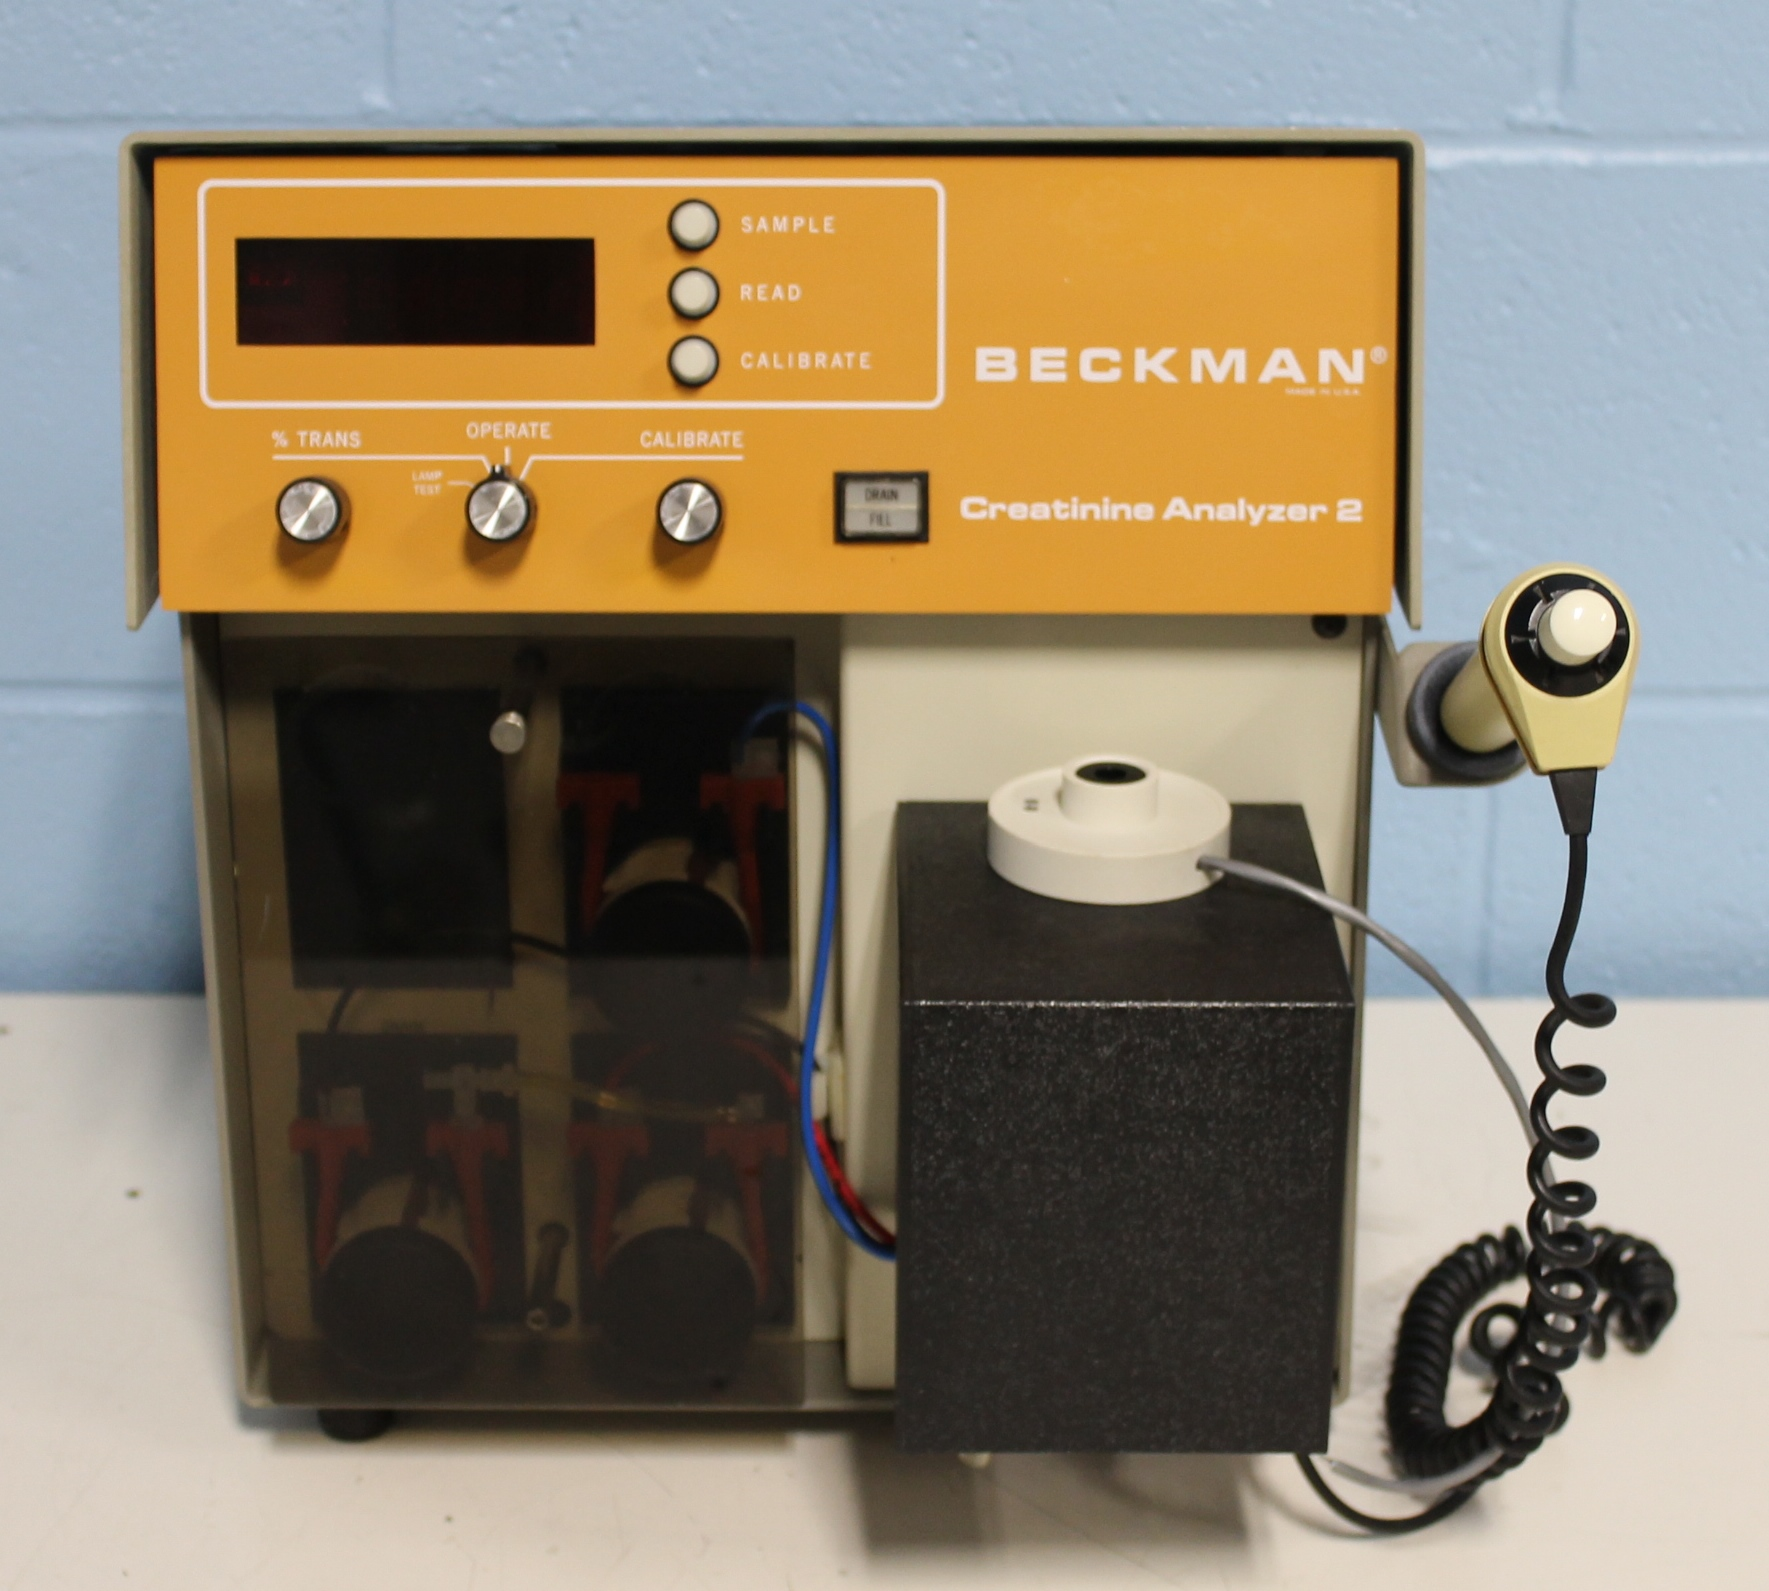 Beckman Coulter Creatinine Analyzer 2 Image